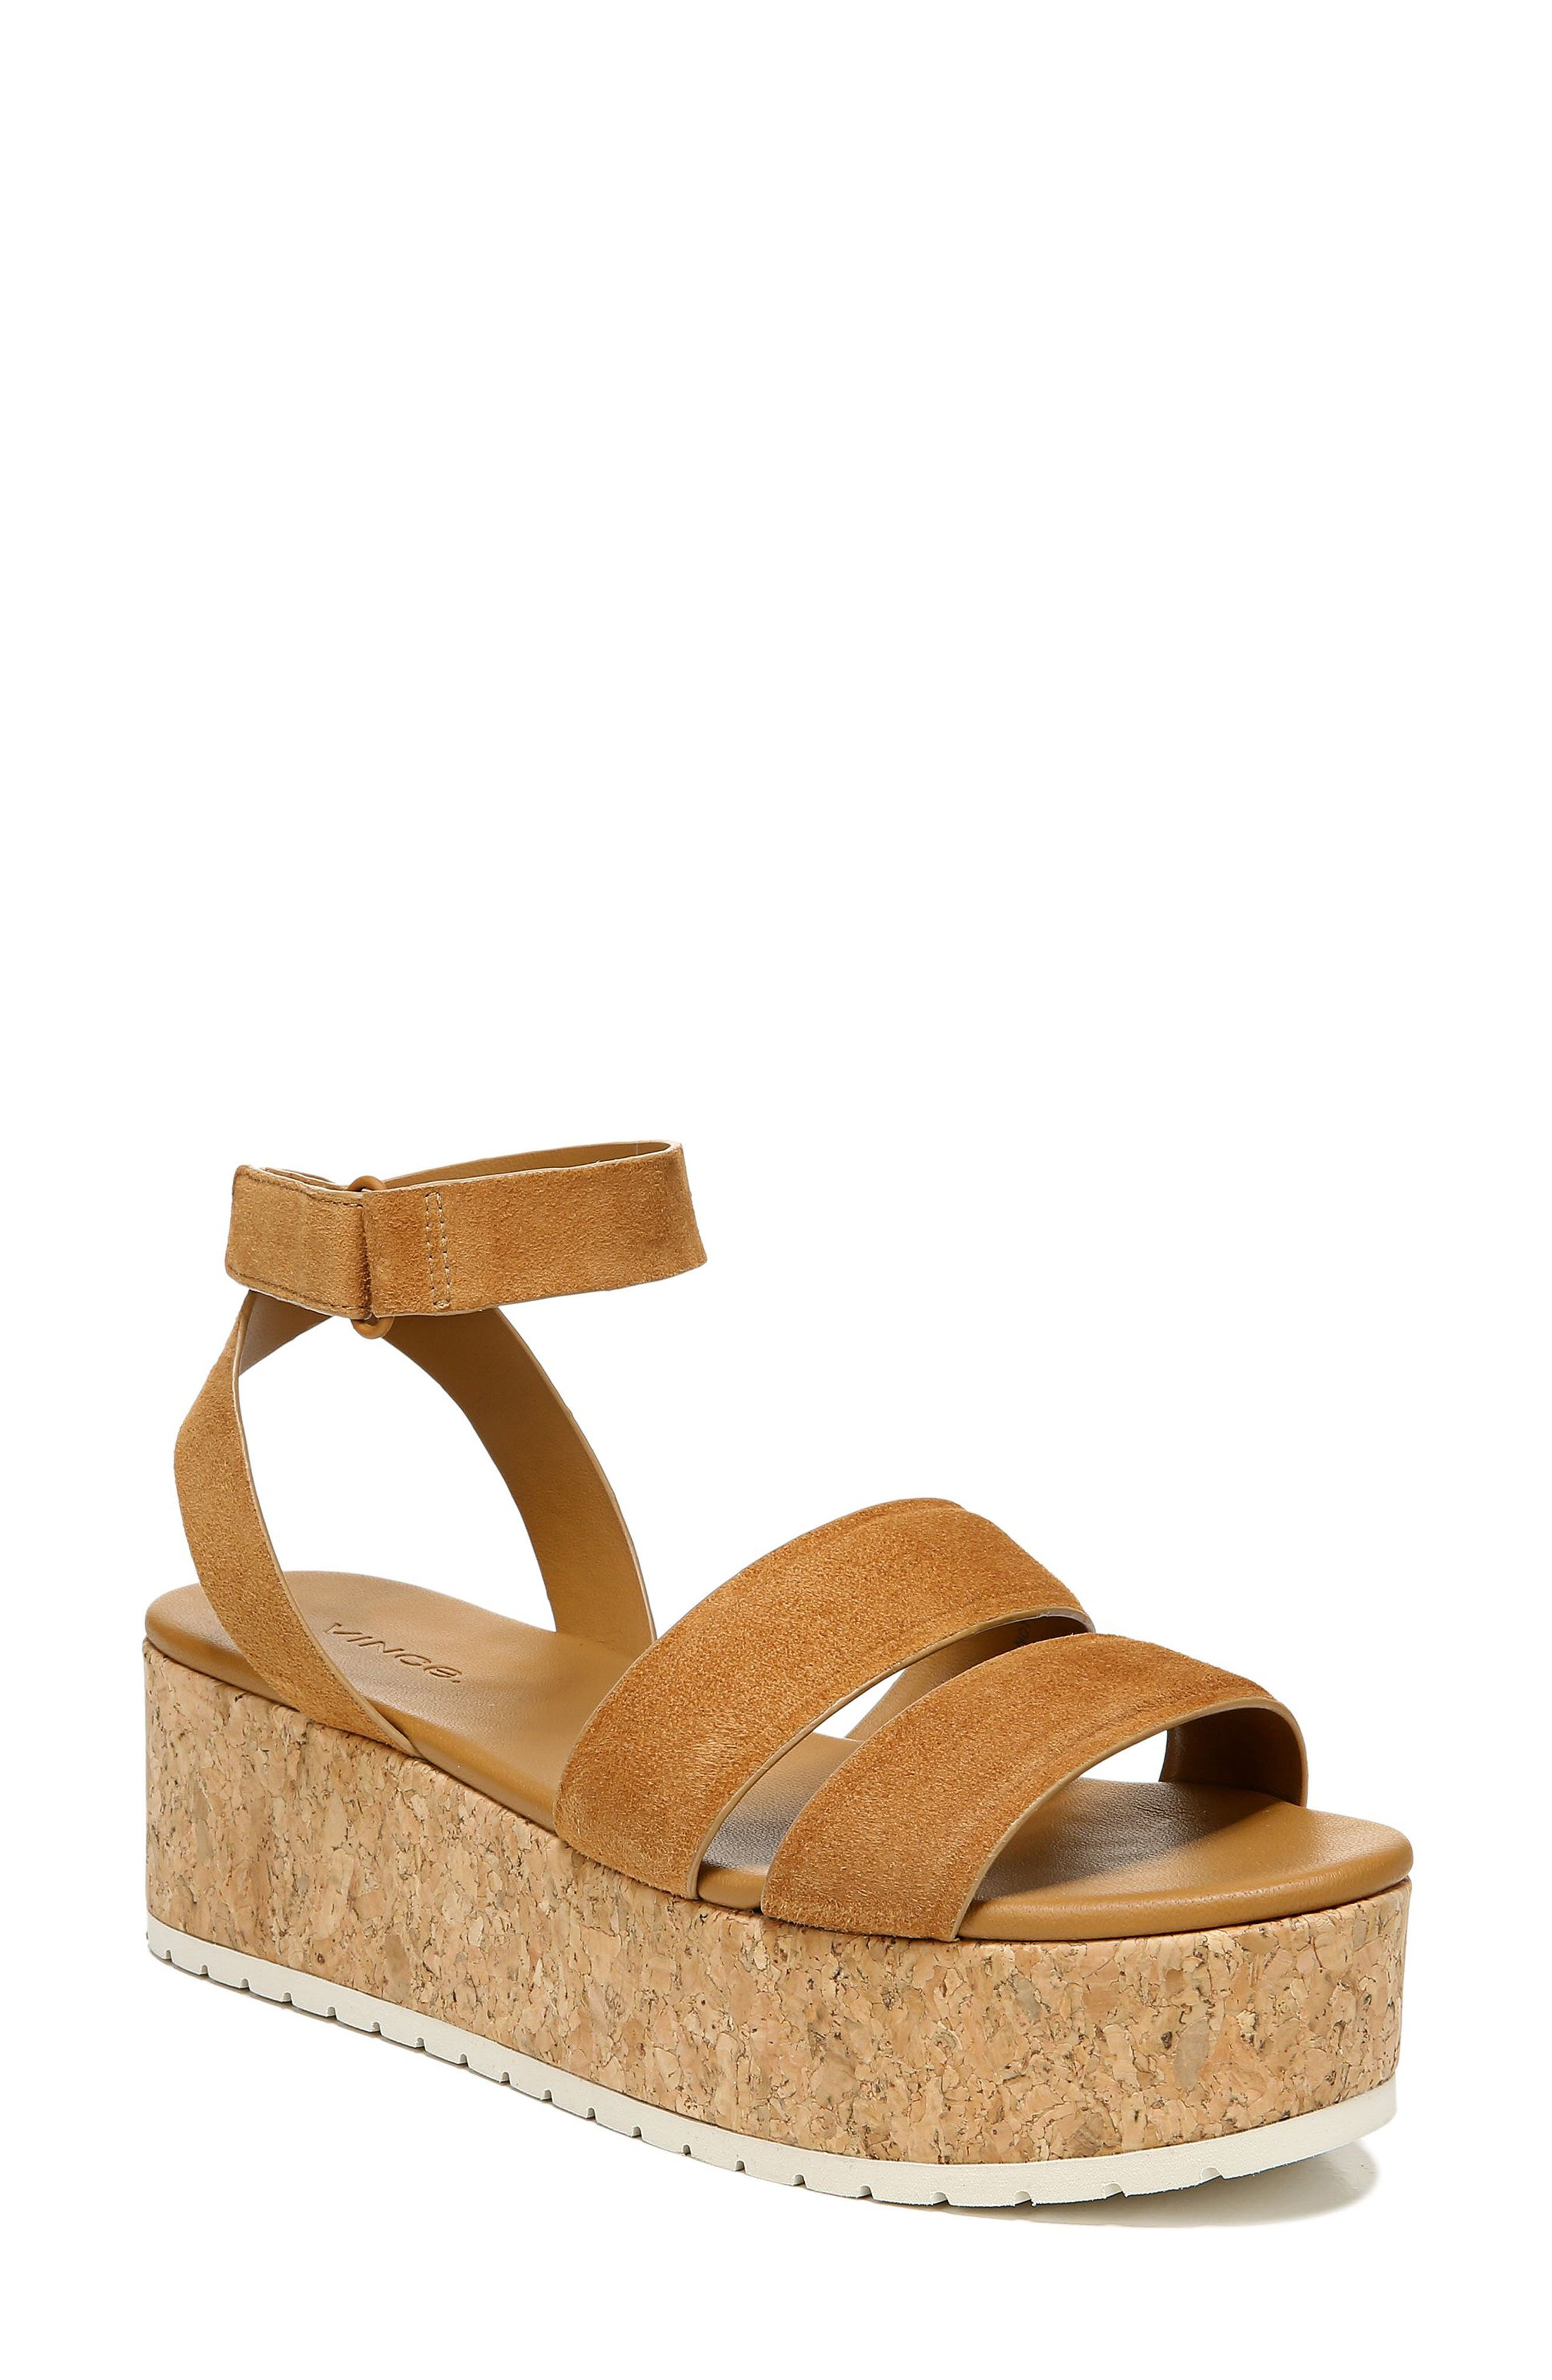 A cork-textured flatform dramatically ramps up the retro appeal of a breezy sandal styled with a wraparound strap that rings the ankle. Style Name: Vince Jet Cork Platform Sandal (Women). Style Number: 5986808 1. Available in stores.